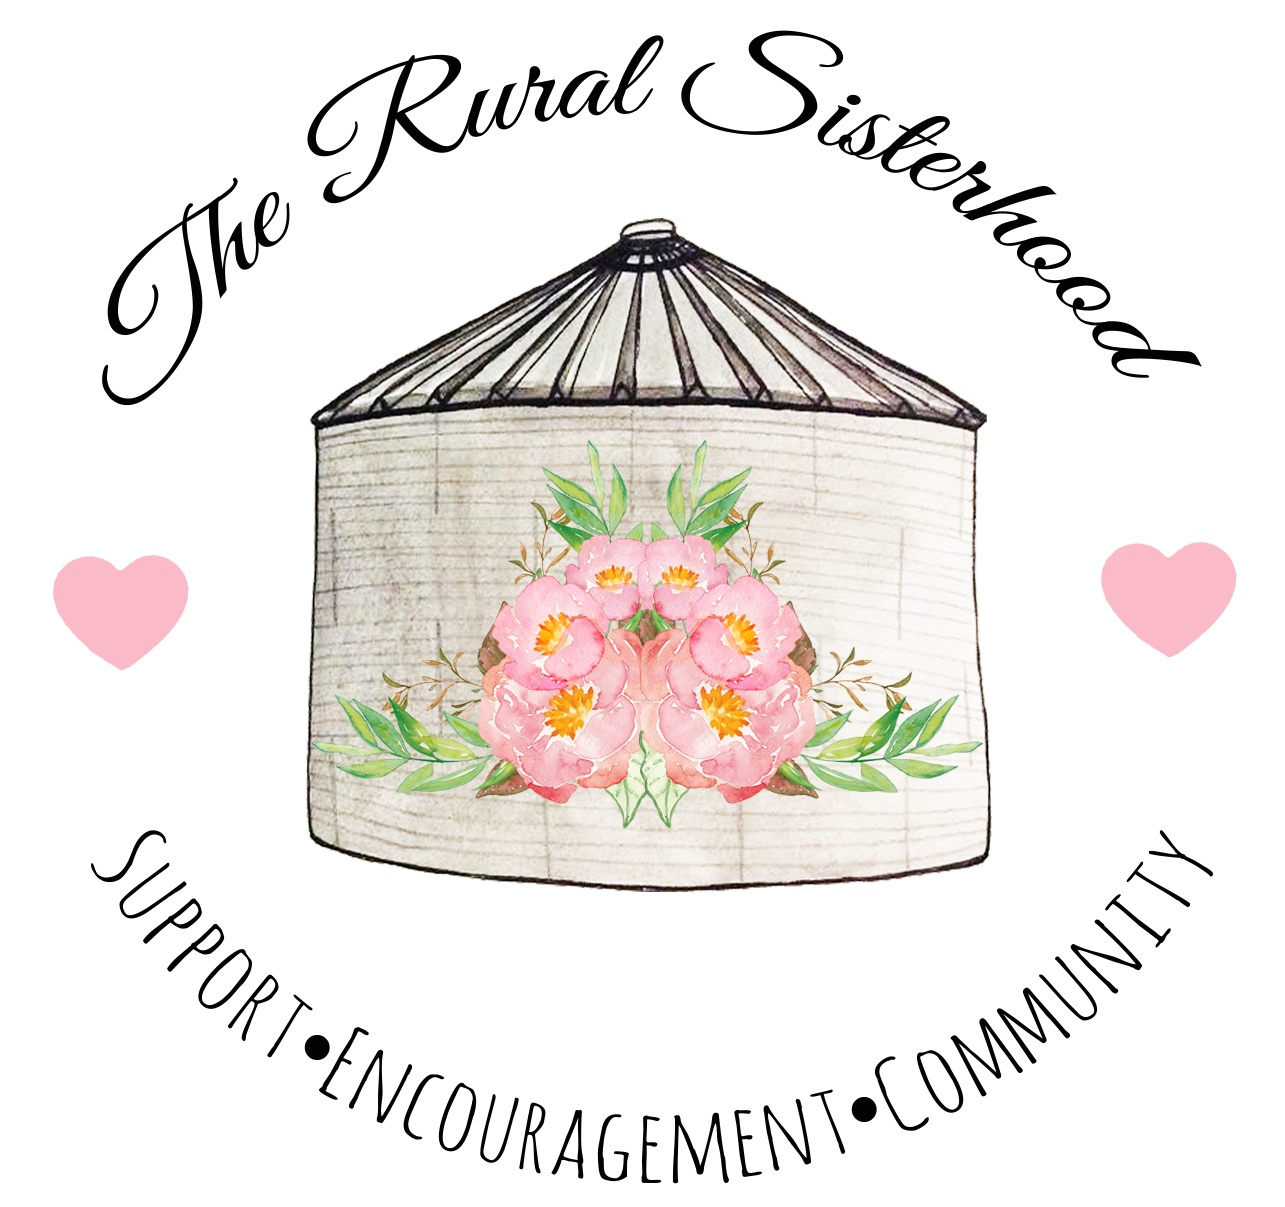 The Rural Sisterhood